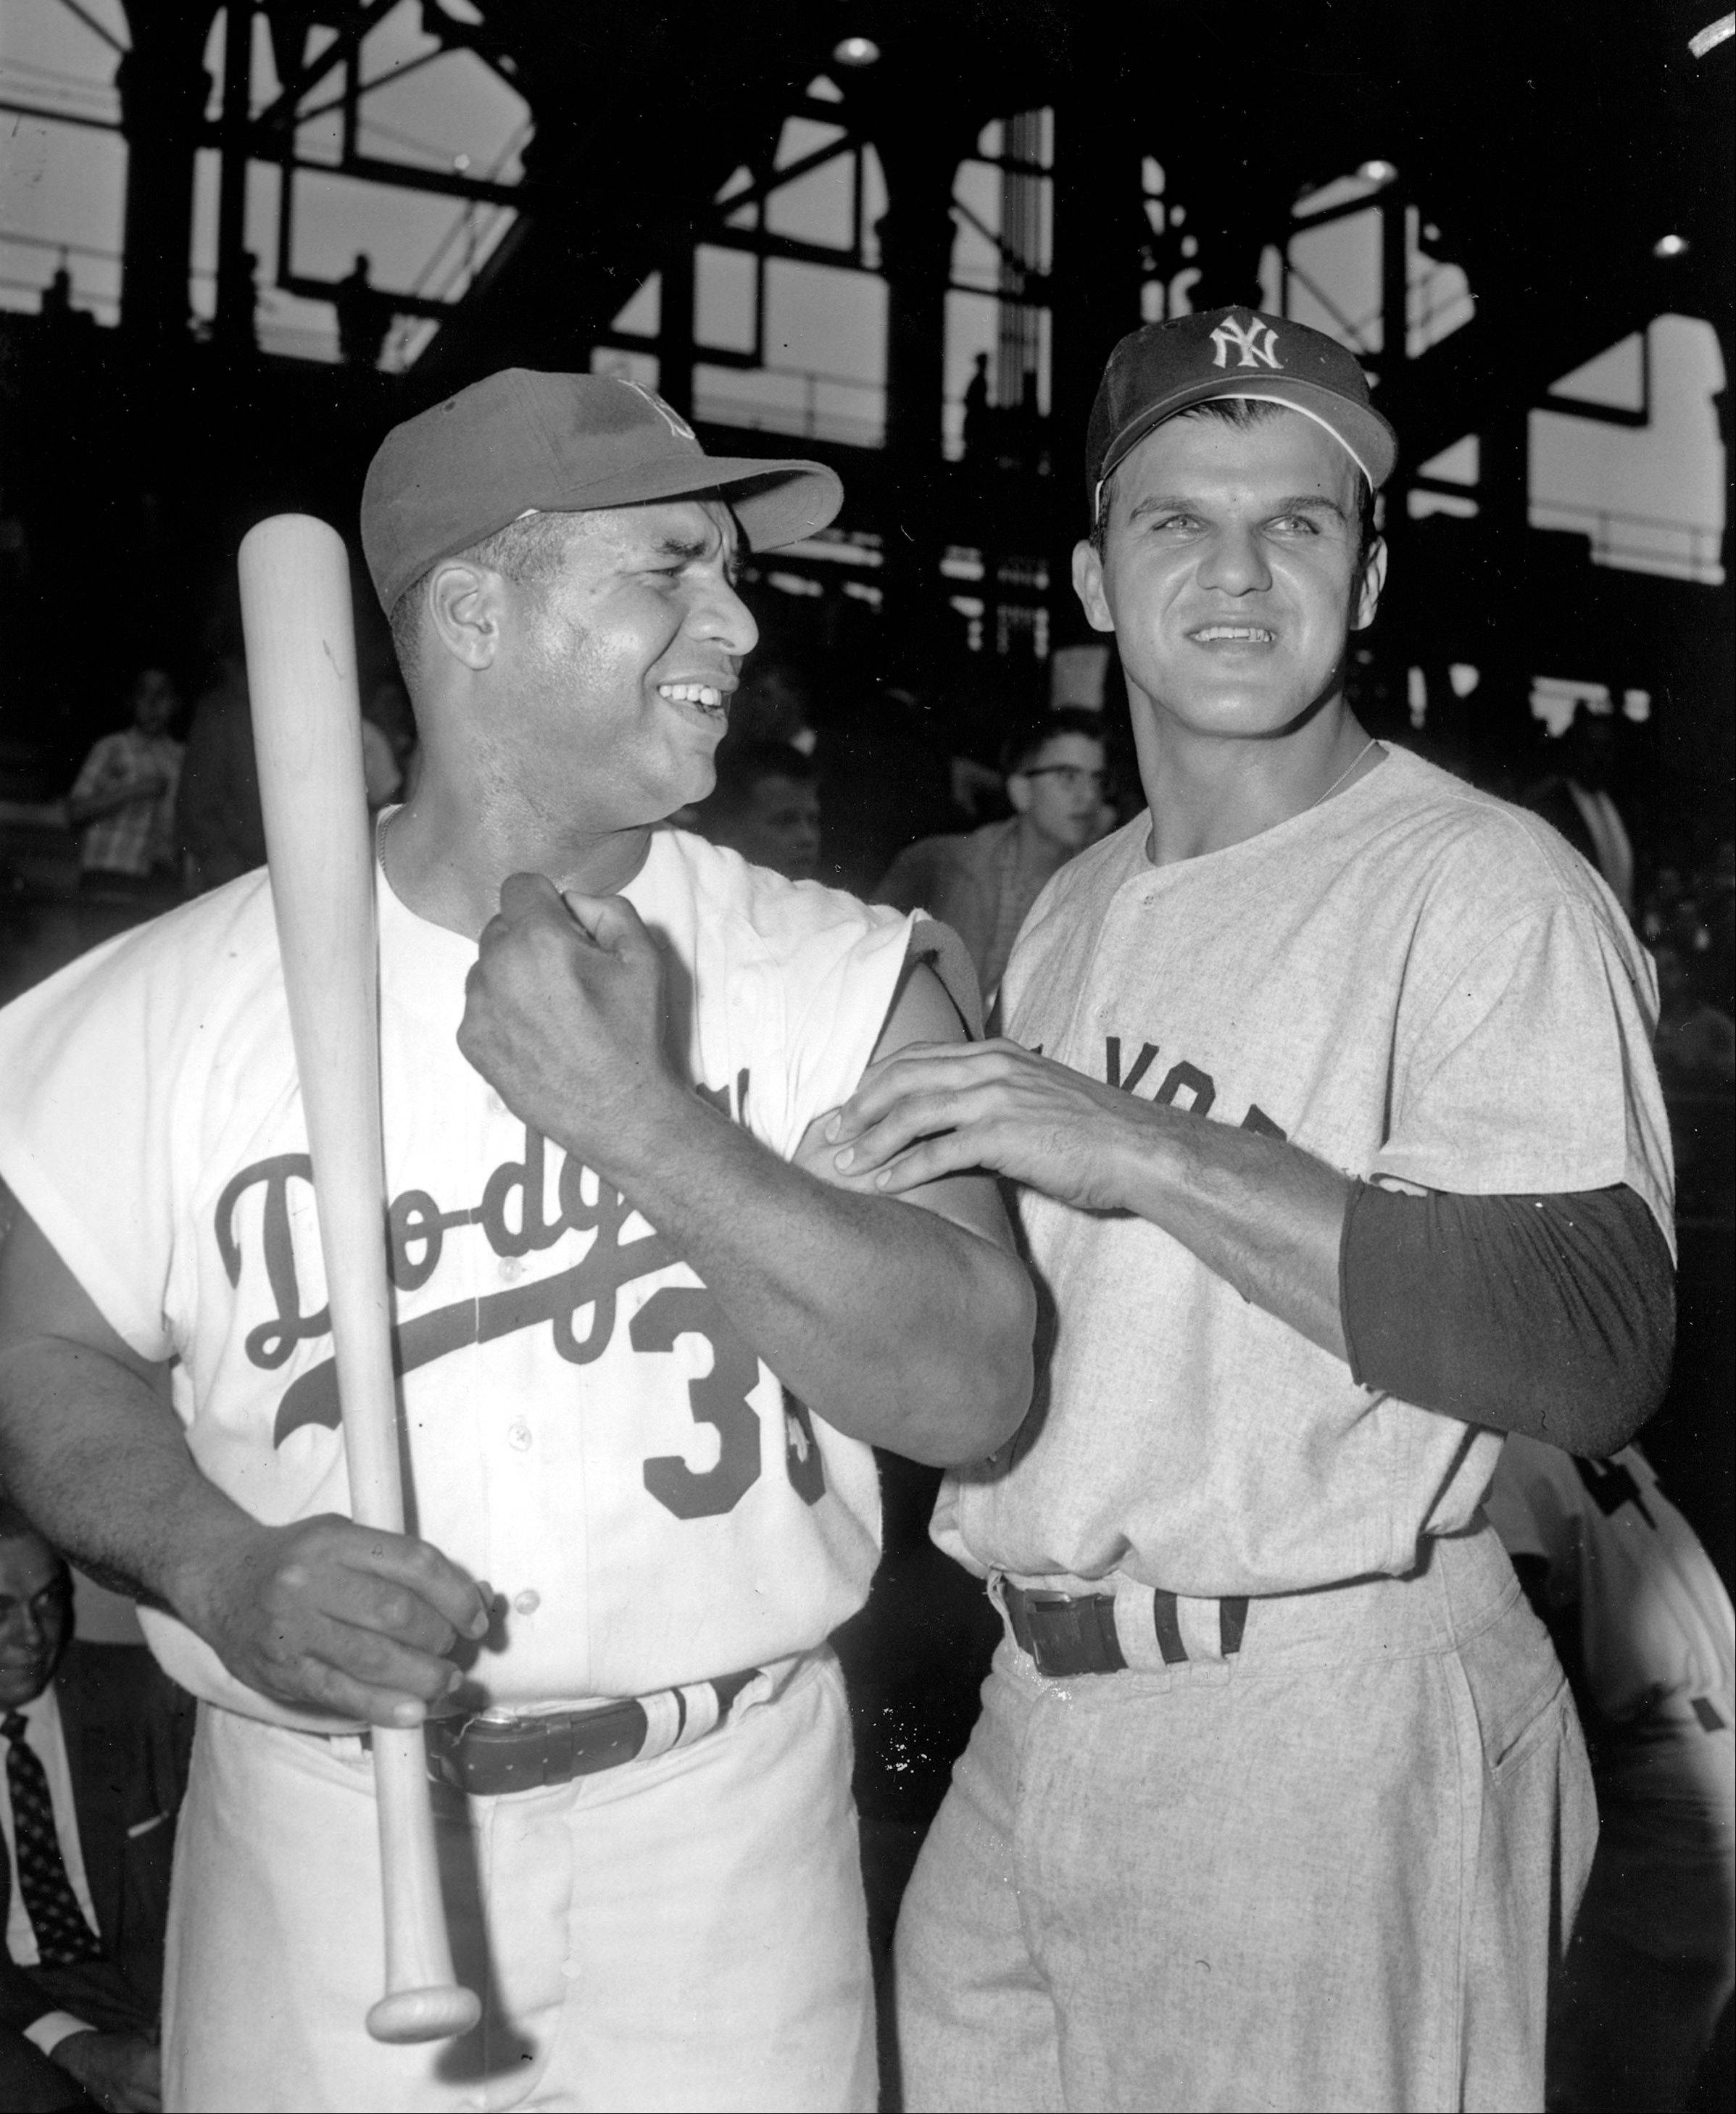 In this May 23, 1959, file photo, Moose Skowron, right, first baseman of the New York Yankees, jokes with Roy Campanella about his muscles after the Brooklyn Dodgers catcher won the pre-game hitting contest at Ebbets Field in the Brooklyn borough of New York. Campanella hit 5 homers to Skowron's 4 in competition held before start of 11th annual Mayor's trophy game. Skowron, a four-time All-Star first baseman who helped the Yankees win four World Series titles in the 1950s and 1960s, died Friday, April 27, 2012, at Northwest Community Hospital in Arlington Heights, Ill. He was 81.